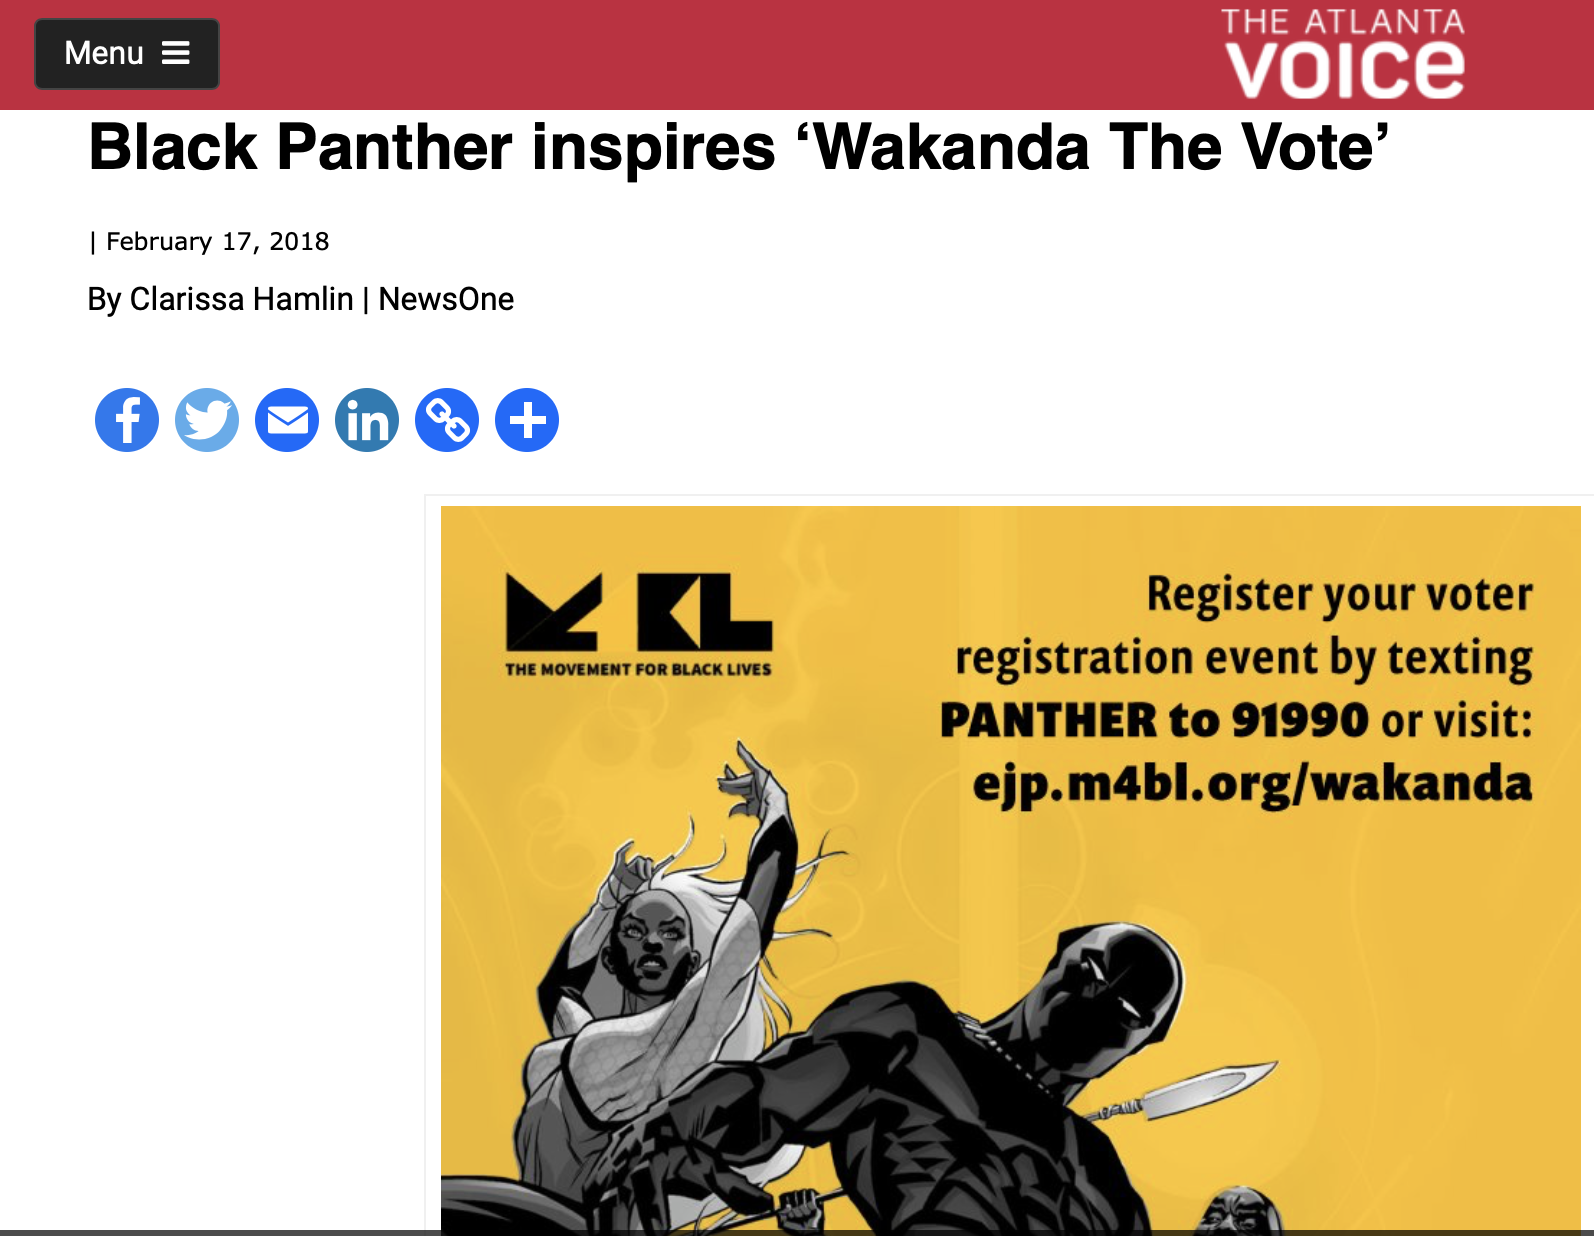 Black Panther inspires 'Wakanda The Vote'